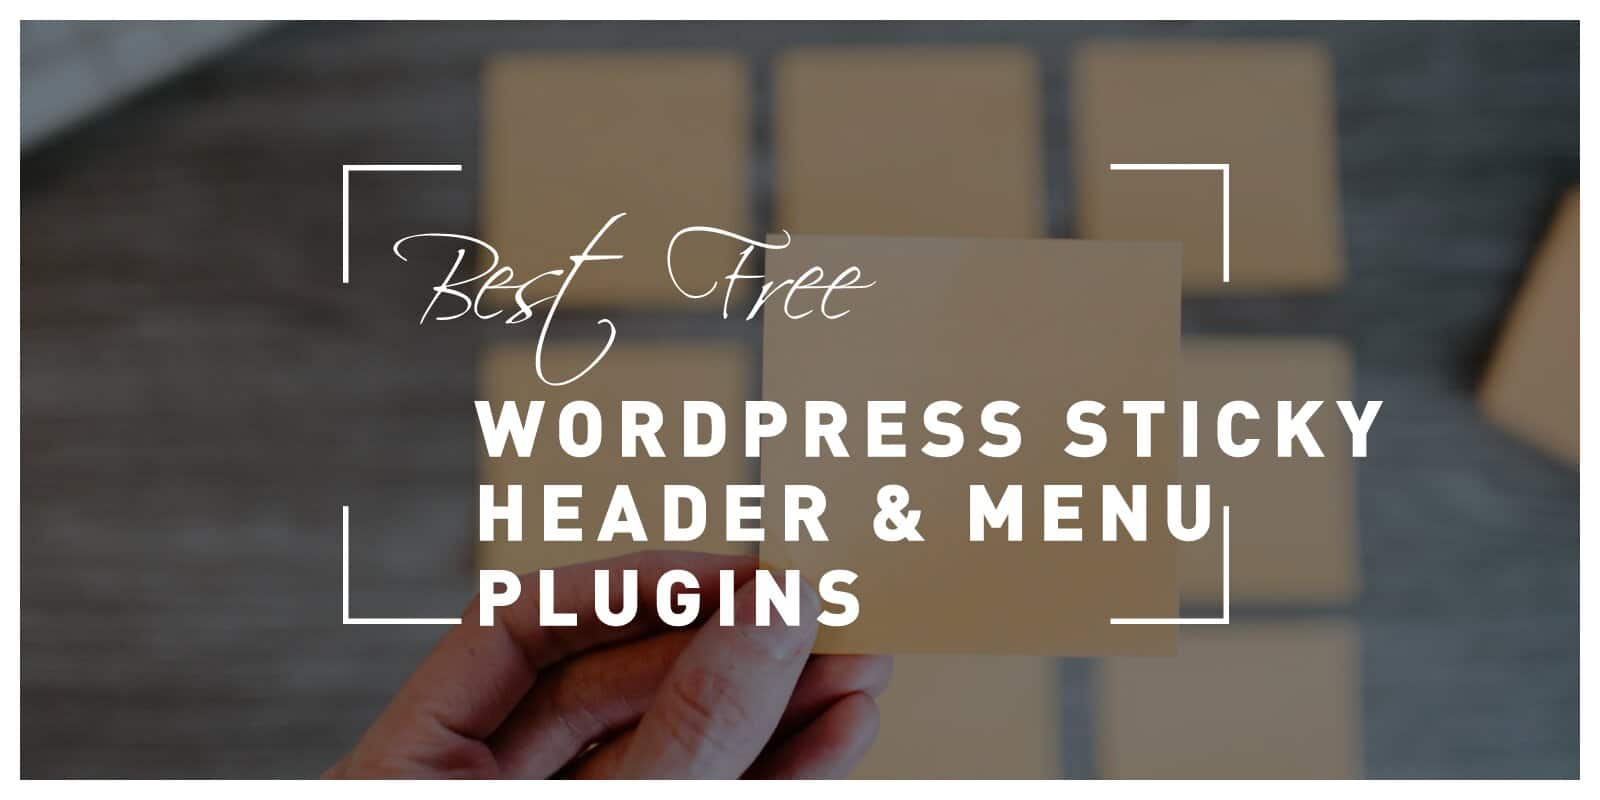 5 Best Free WordPress Sticky Header & Menu Plugins: Improve Website Navigation Without Spending a Dime